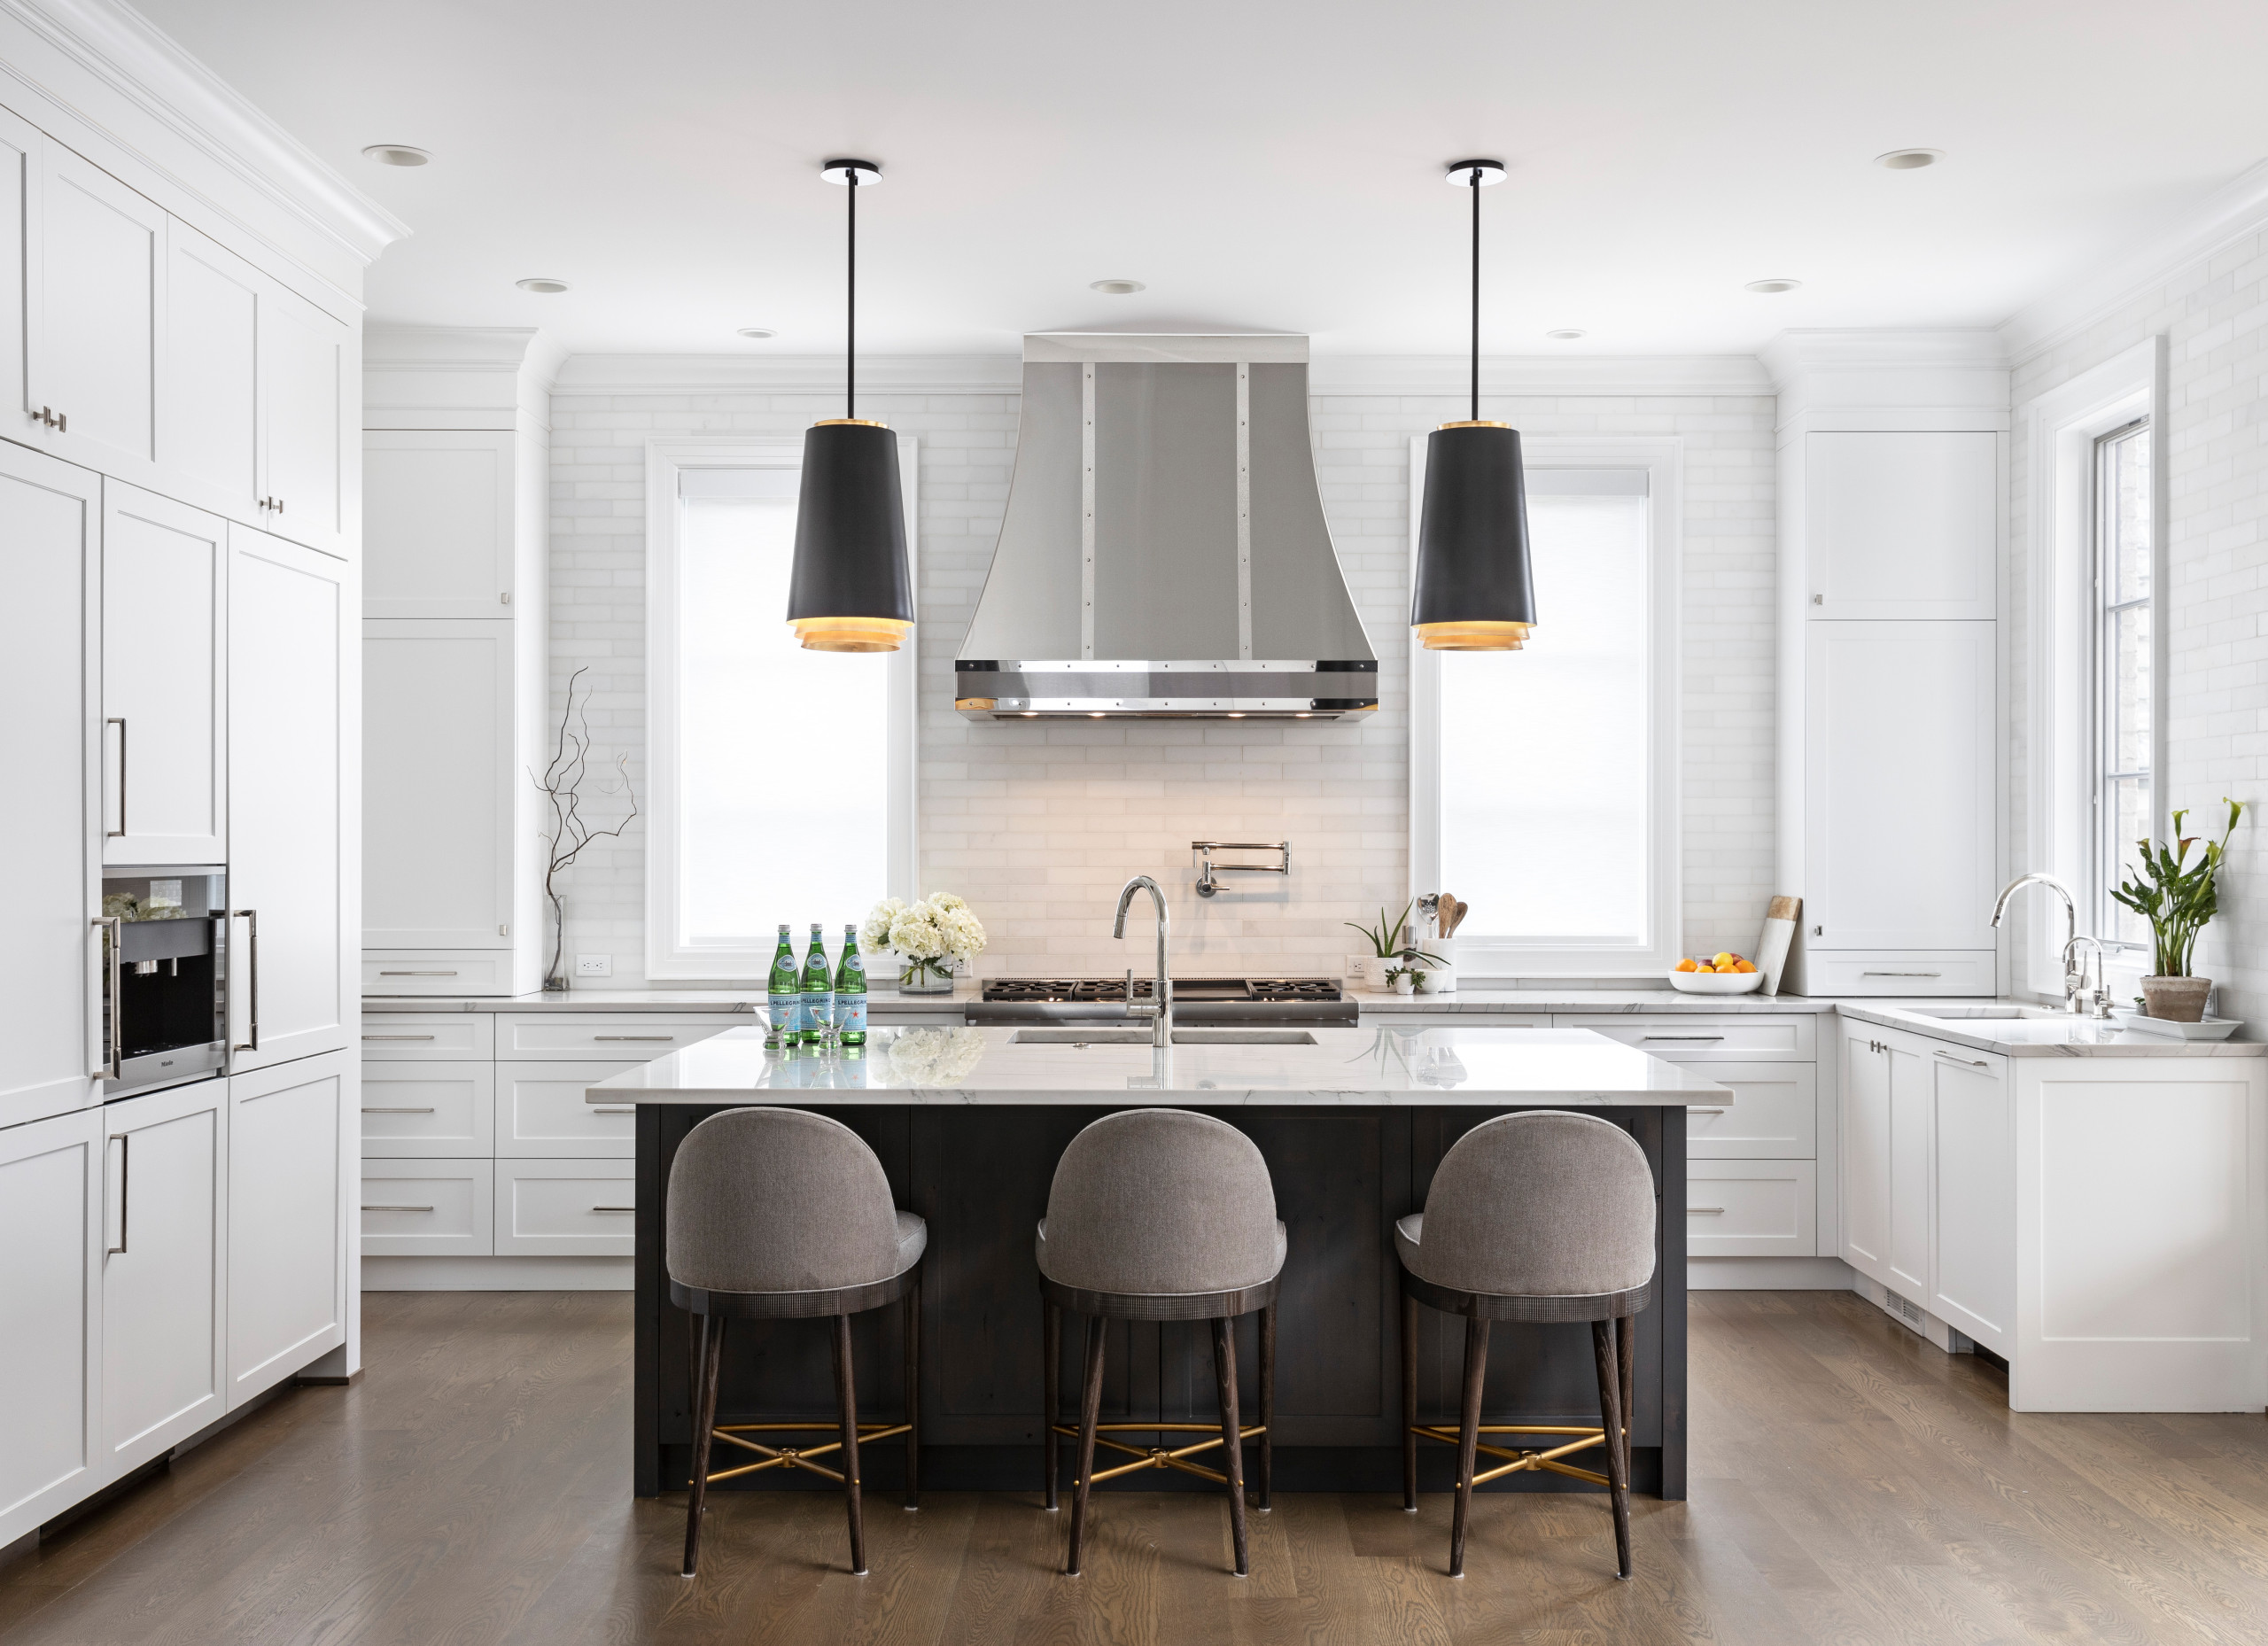 Serenity in the Kitchen. When working with an open floor plan, it's essential to tie in these spaces with the rest of the Home. The custom metal hood becomes the star of the show, and you can be sure